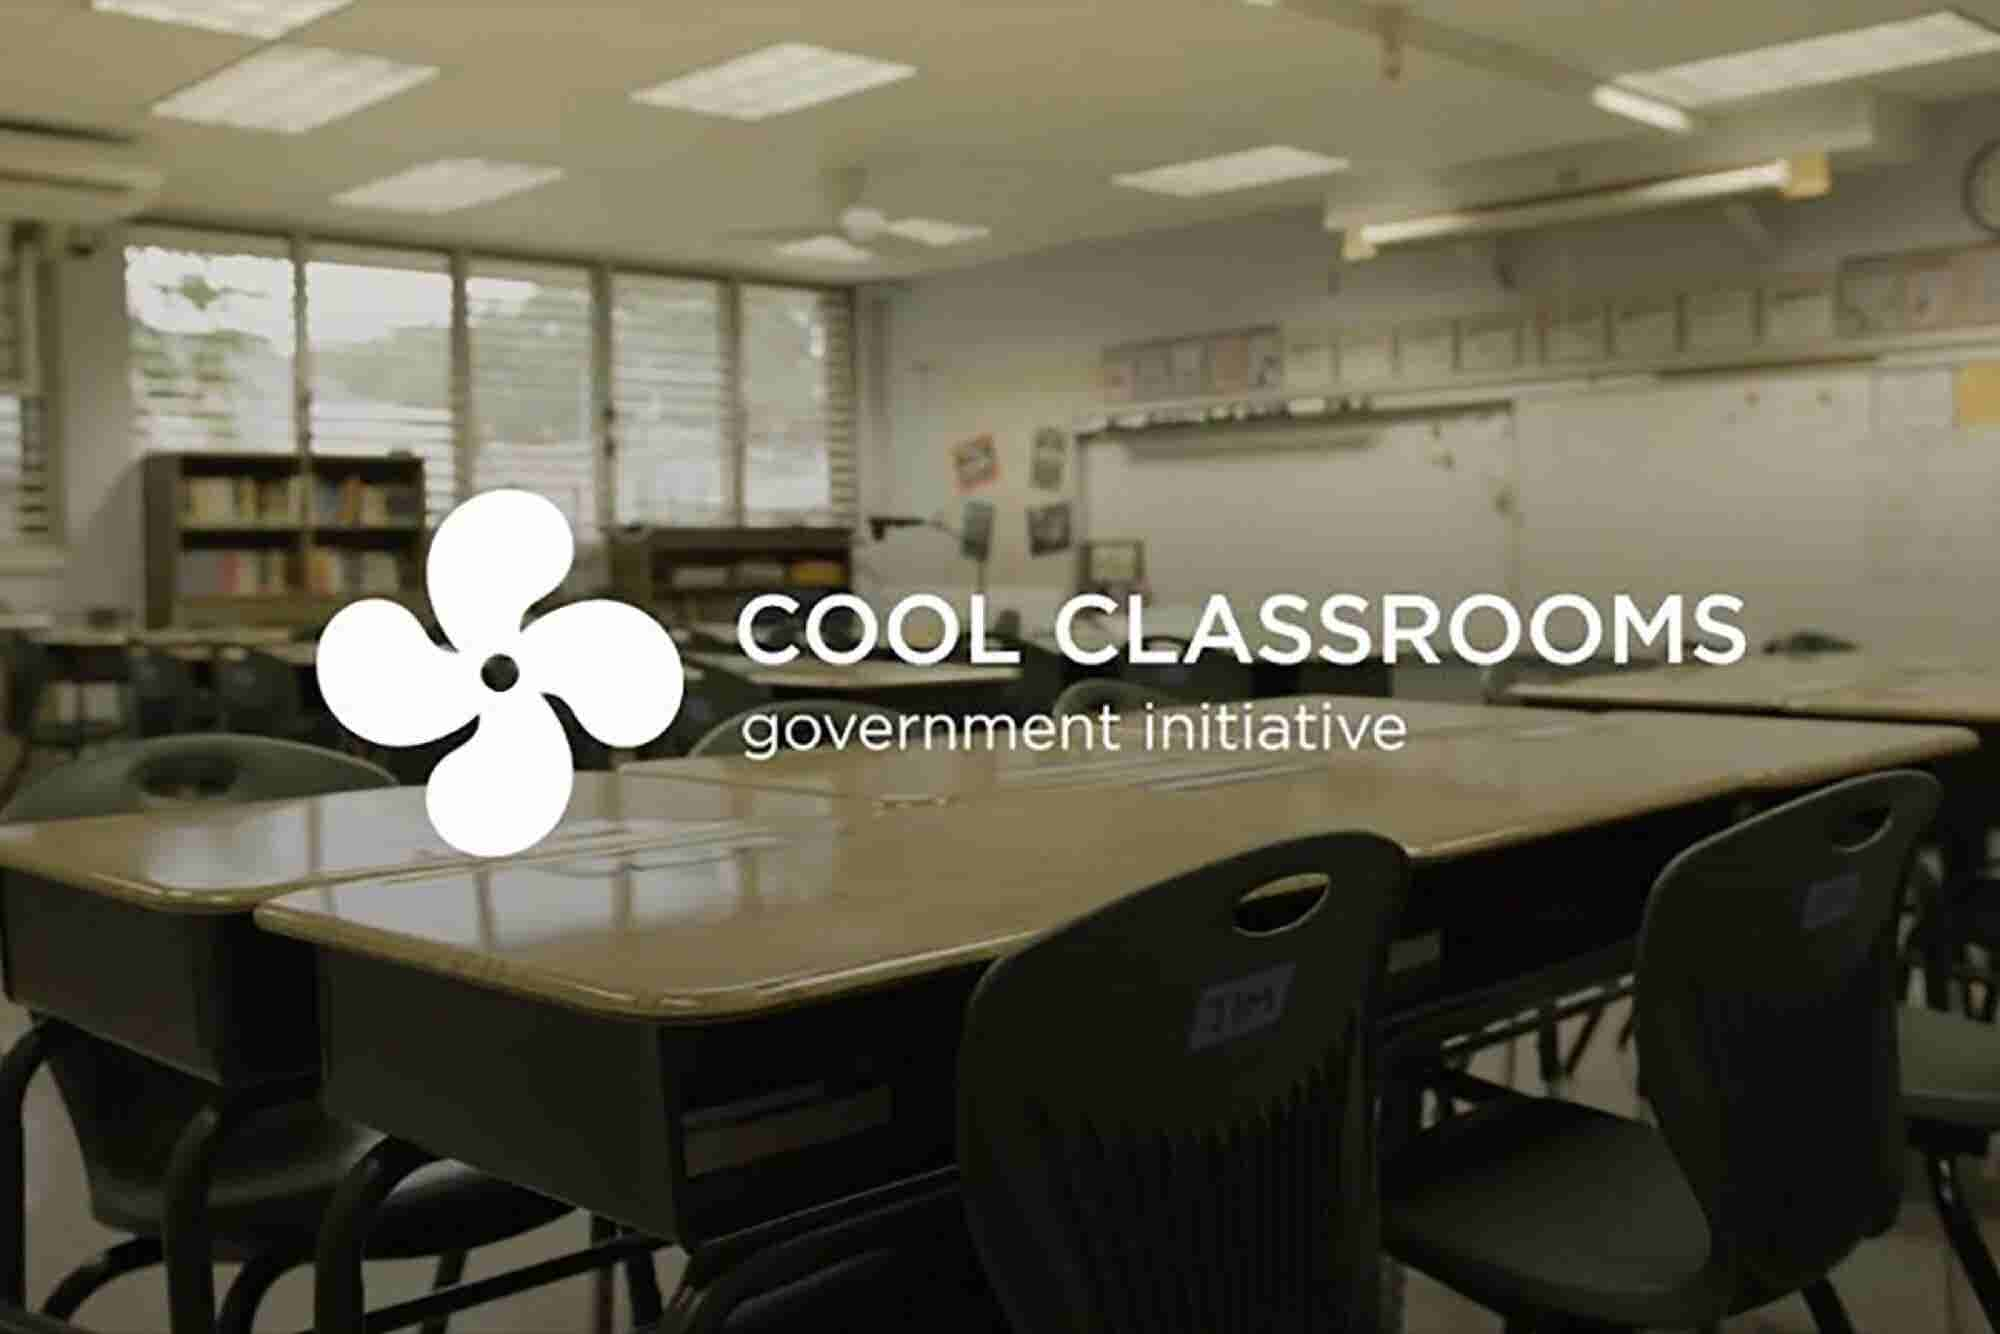 Tesla Is Cooling Down Classrooms in Hawaii